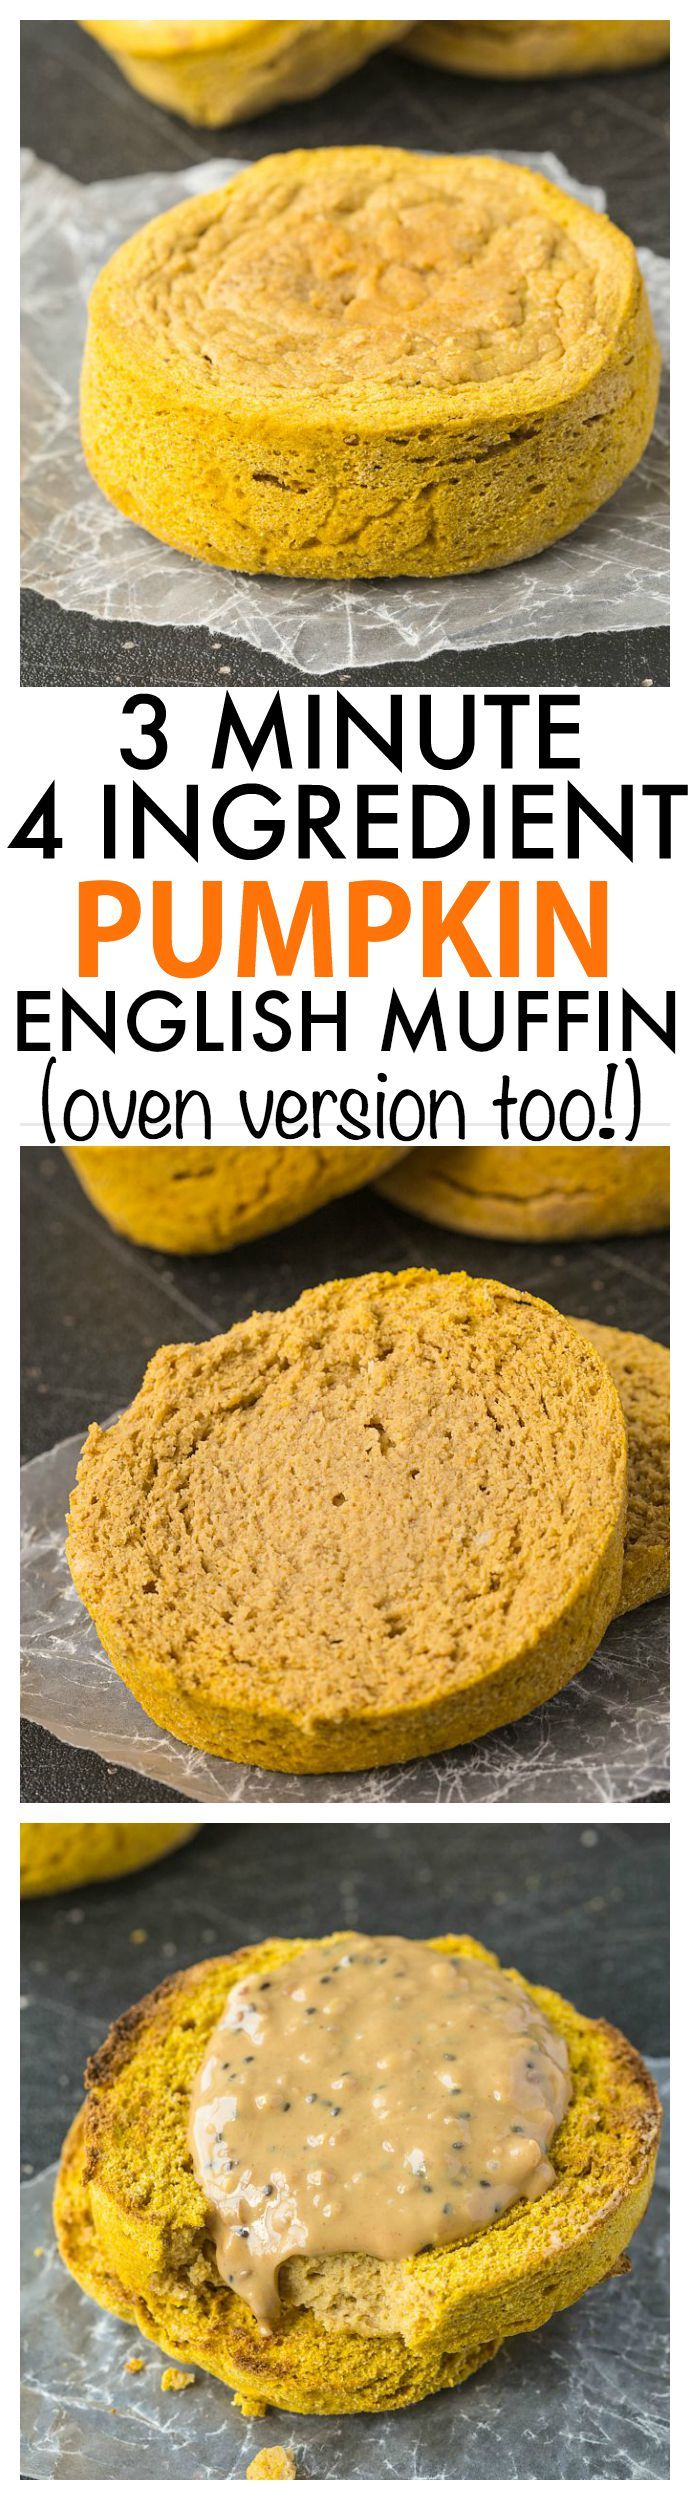 Pumpkin English Muffin vegan option available.Substitute flax egg for chicken egg.